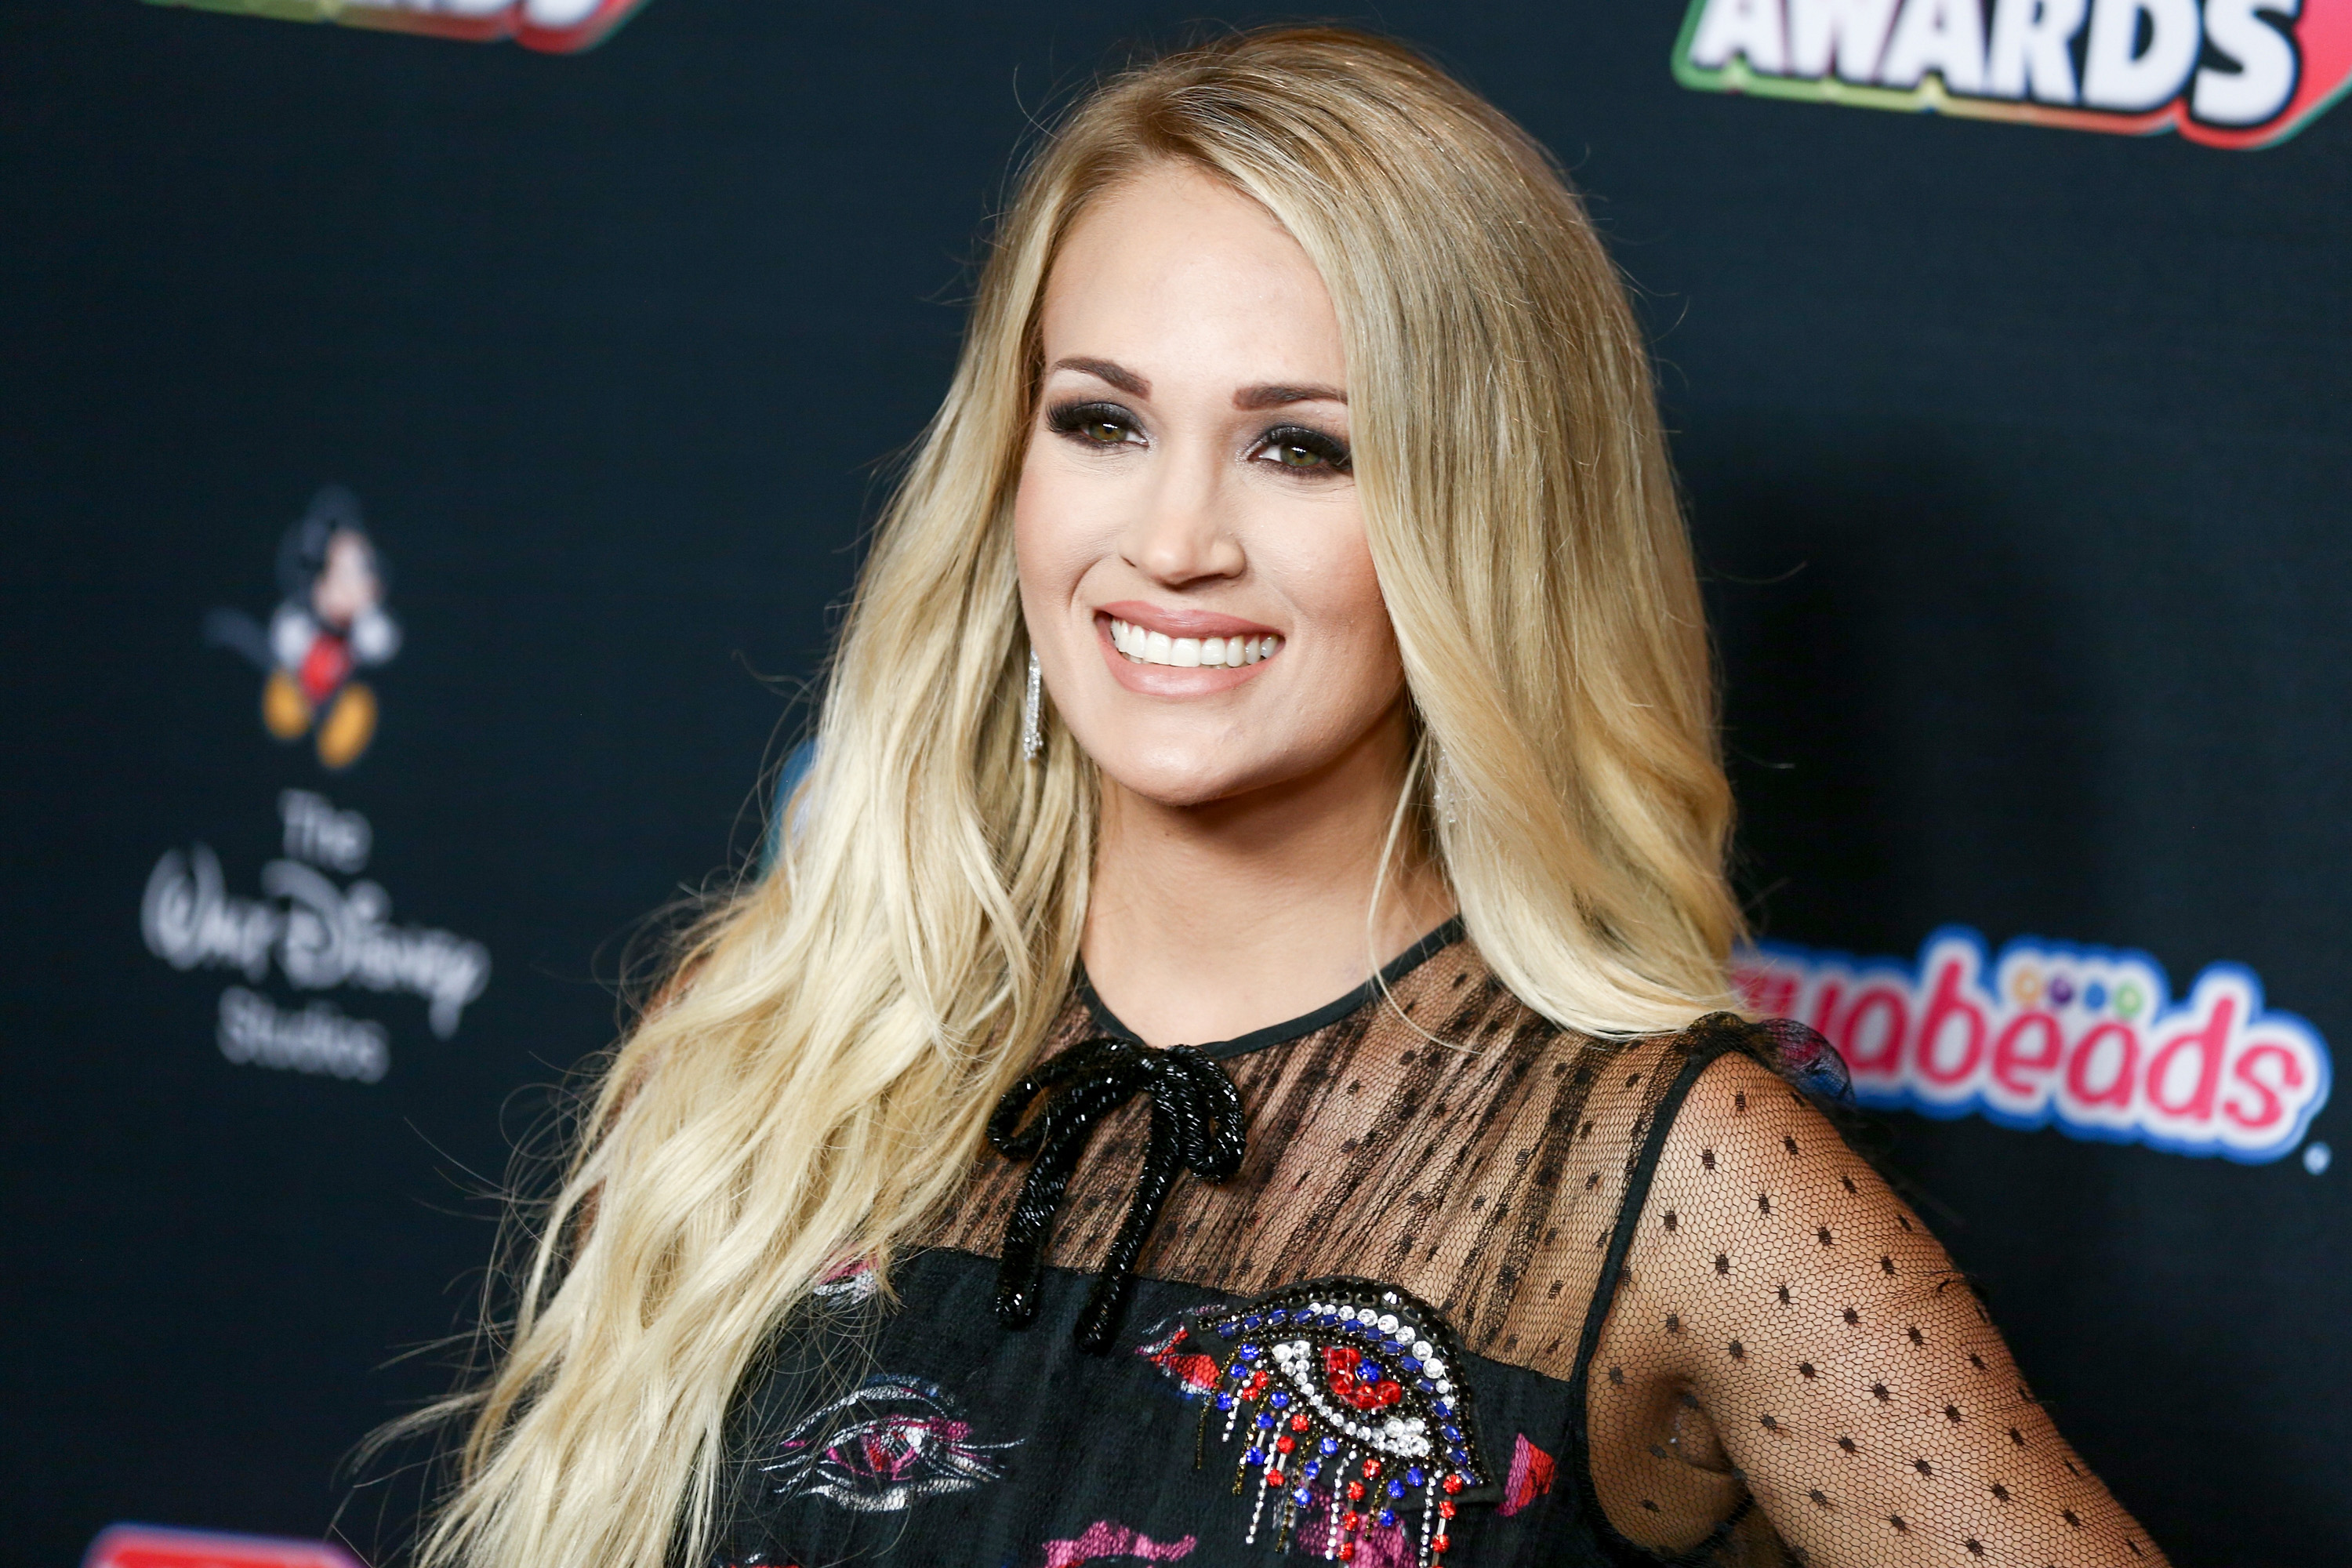 Carrie Underwood attends the 2018 Radio Disney Music Awards at Loews Hollywood Hotel on June 22, 2018 in Hollywood, California.